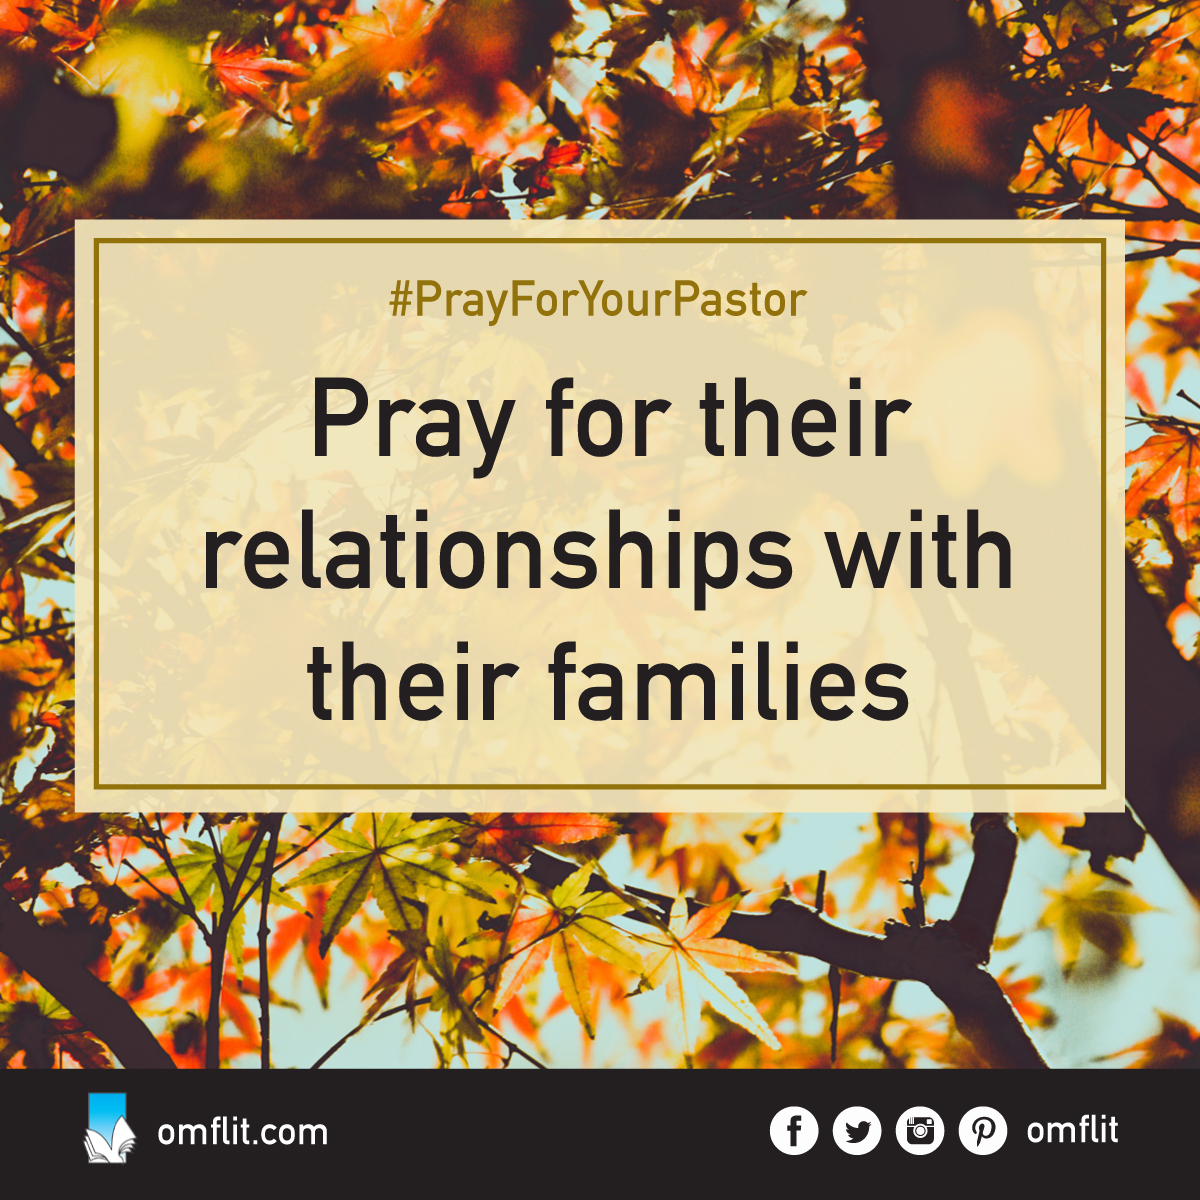 #PrayForYourPastor - Pray for their relationship with their families.Pray that they have a